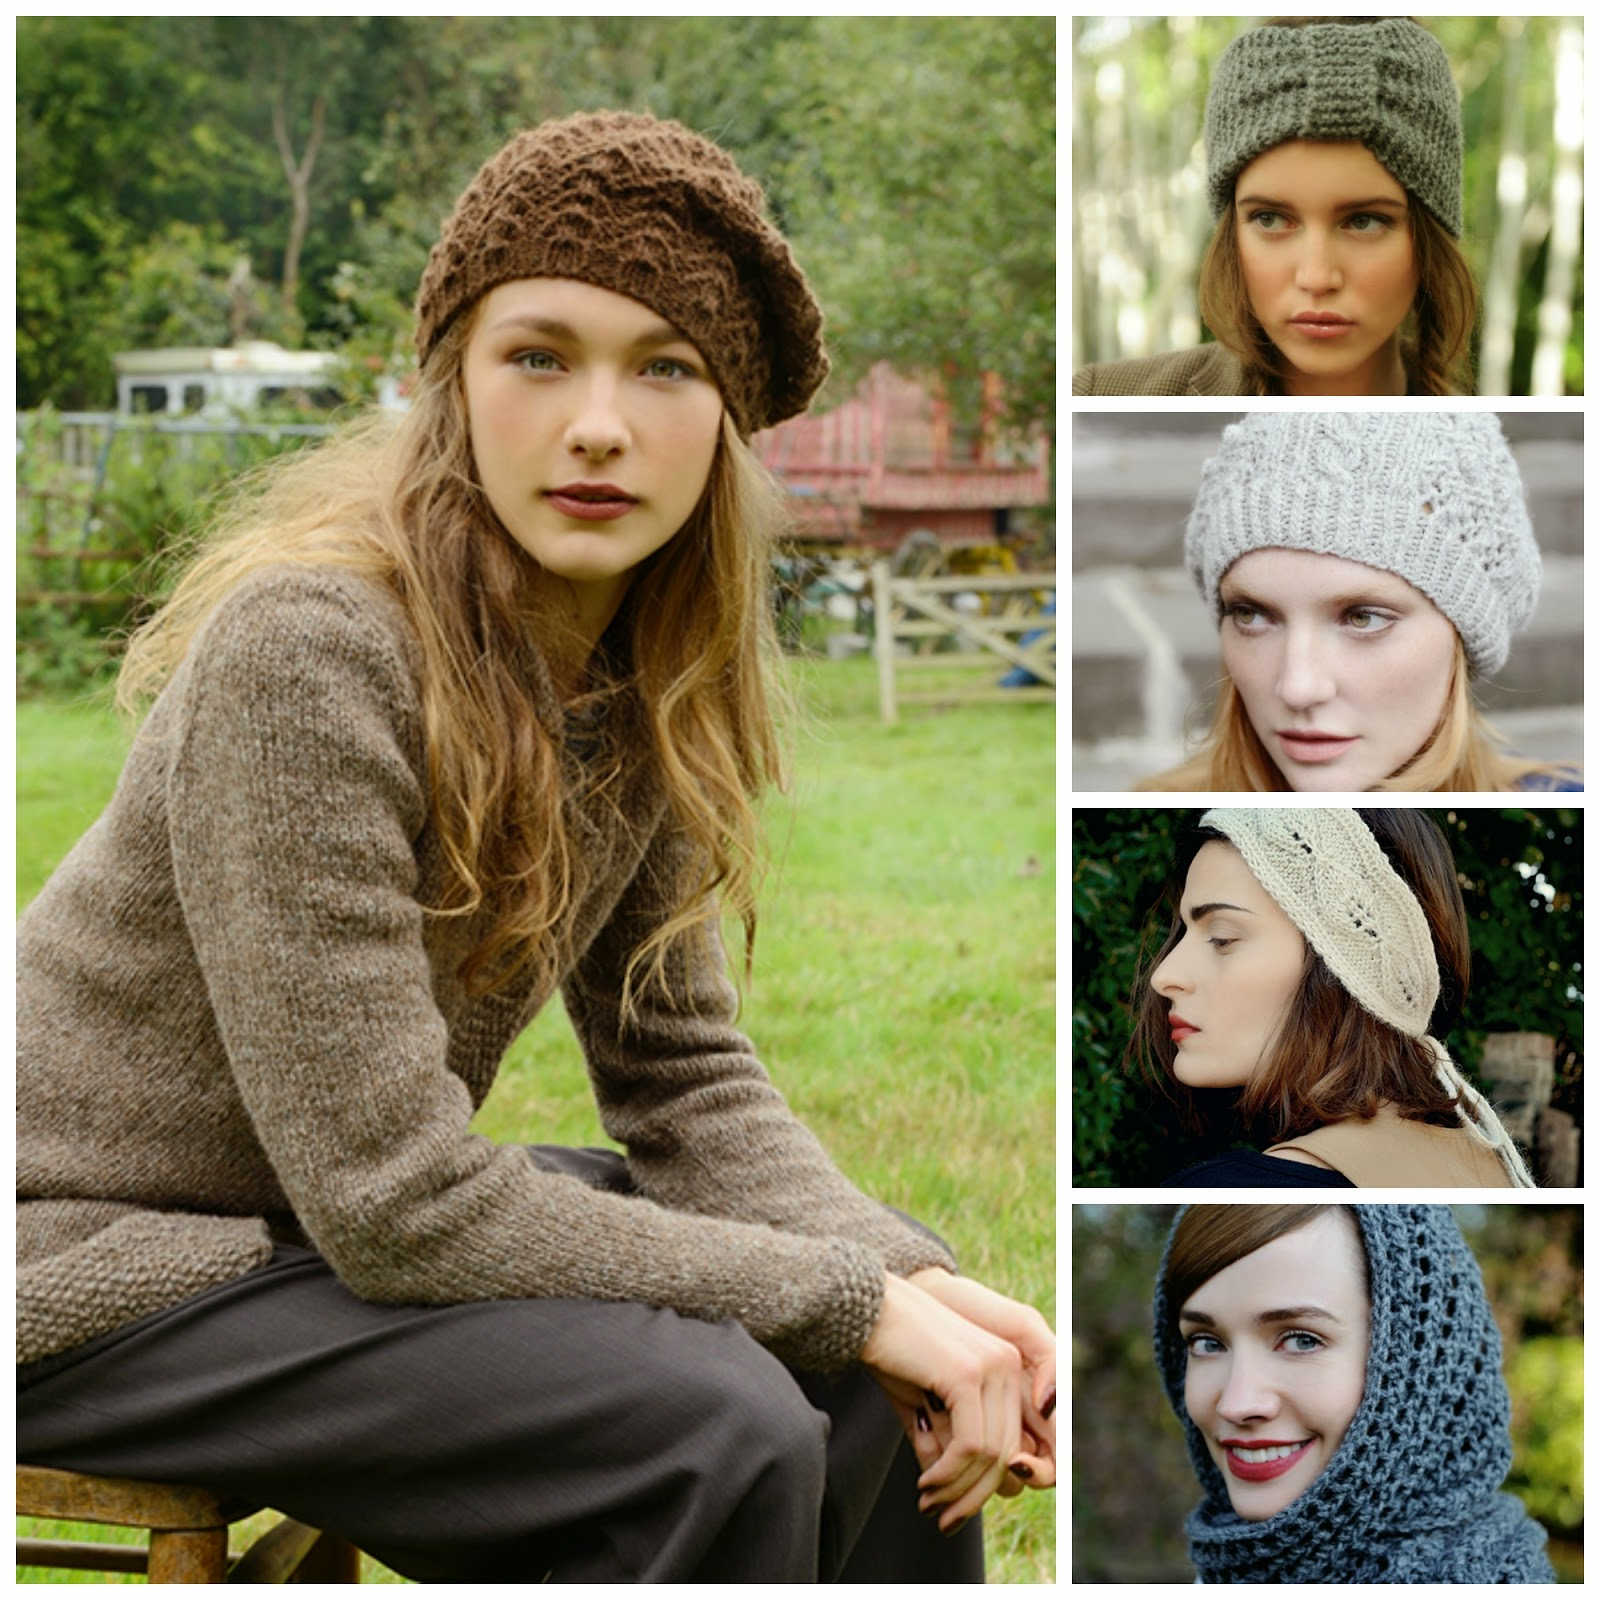 http://www.purlalpacadesigns.com/shop/product-category/knitting-kits/?garment=Accessories